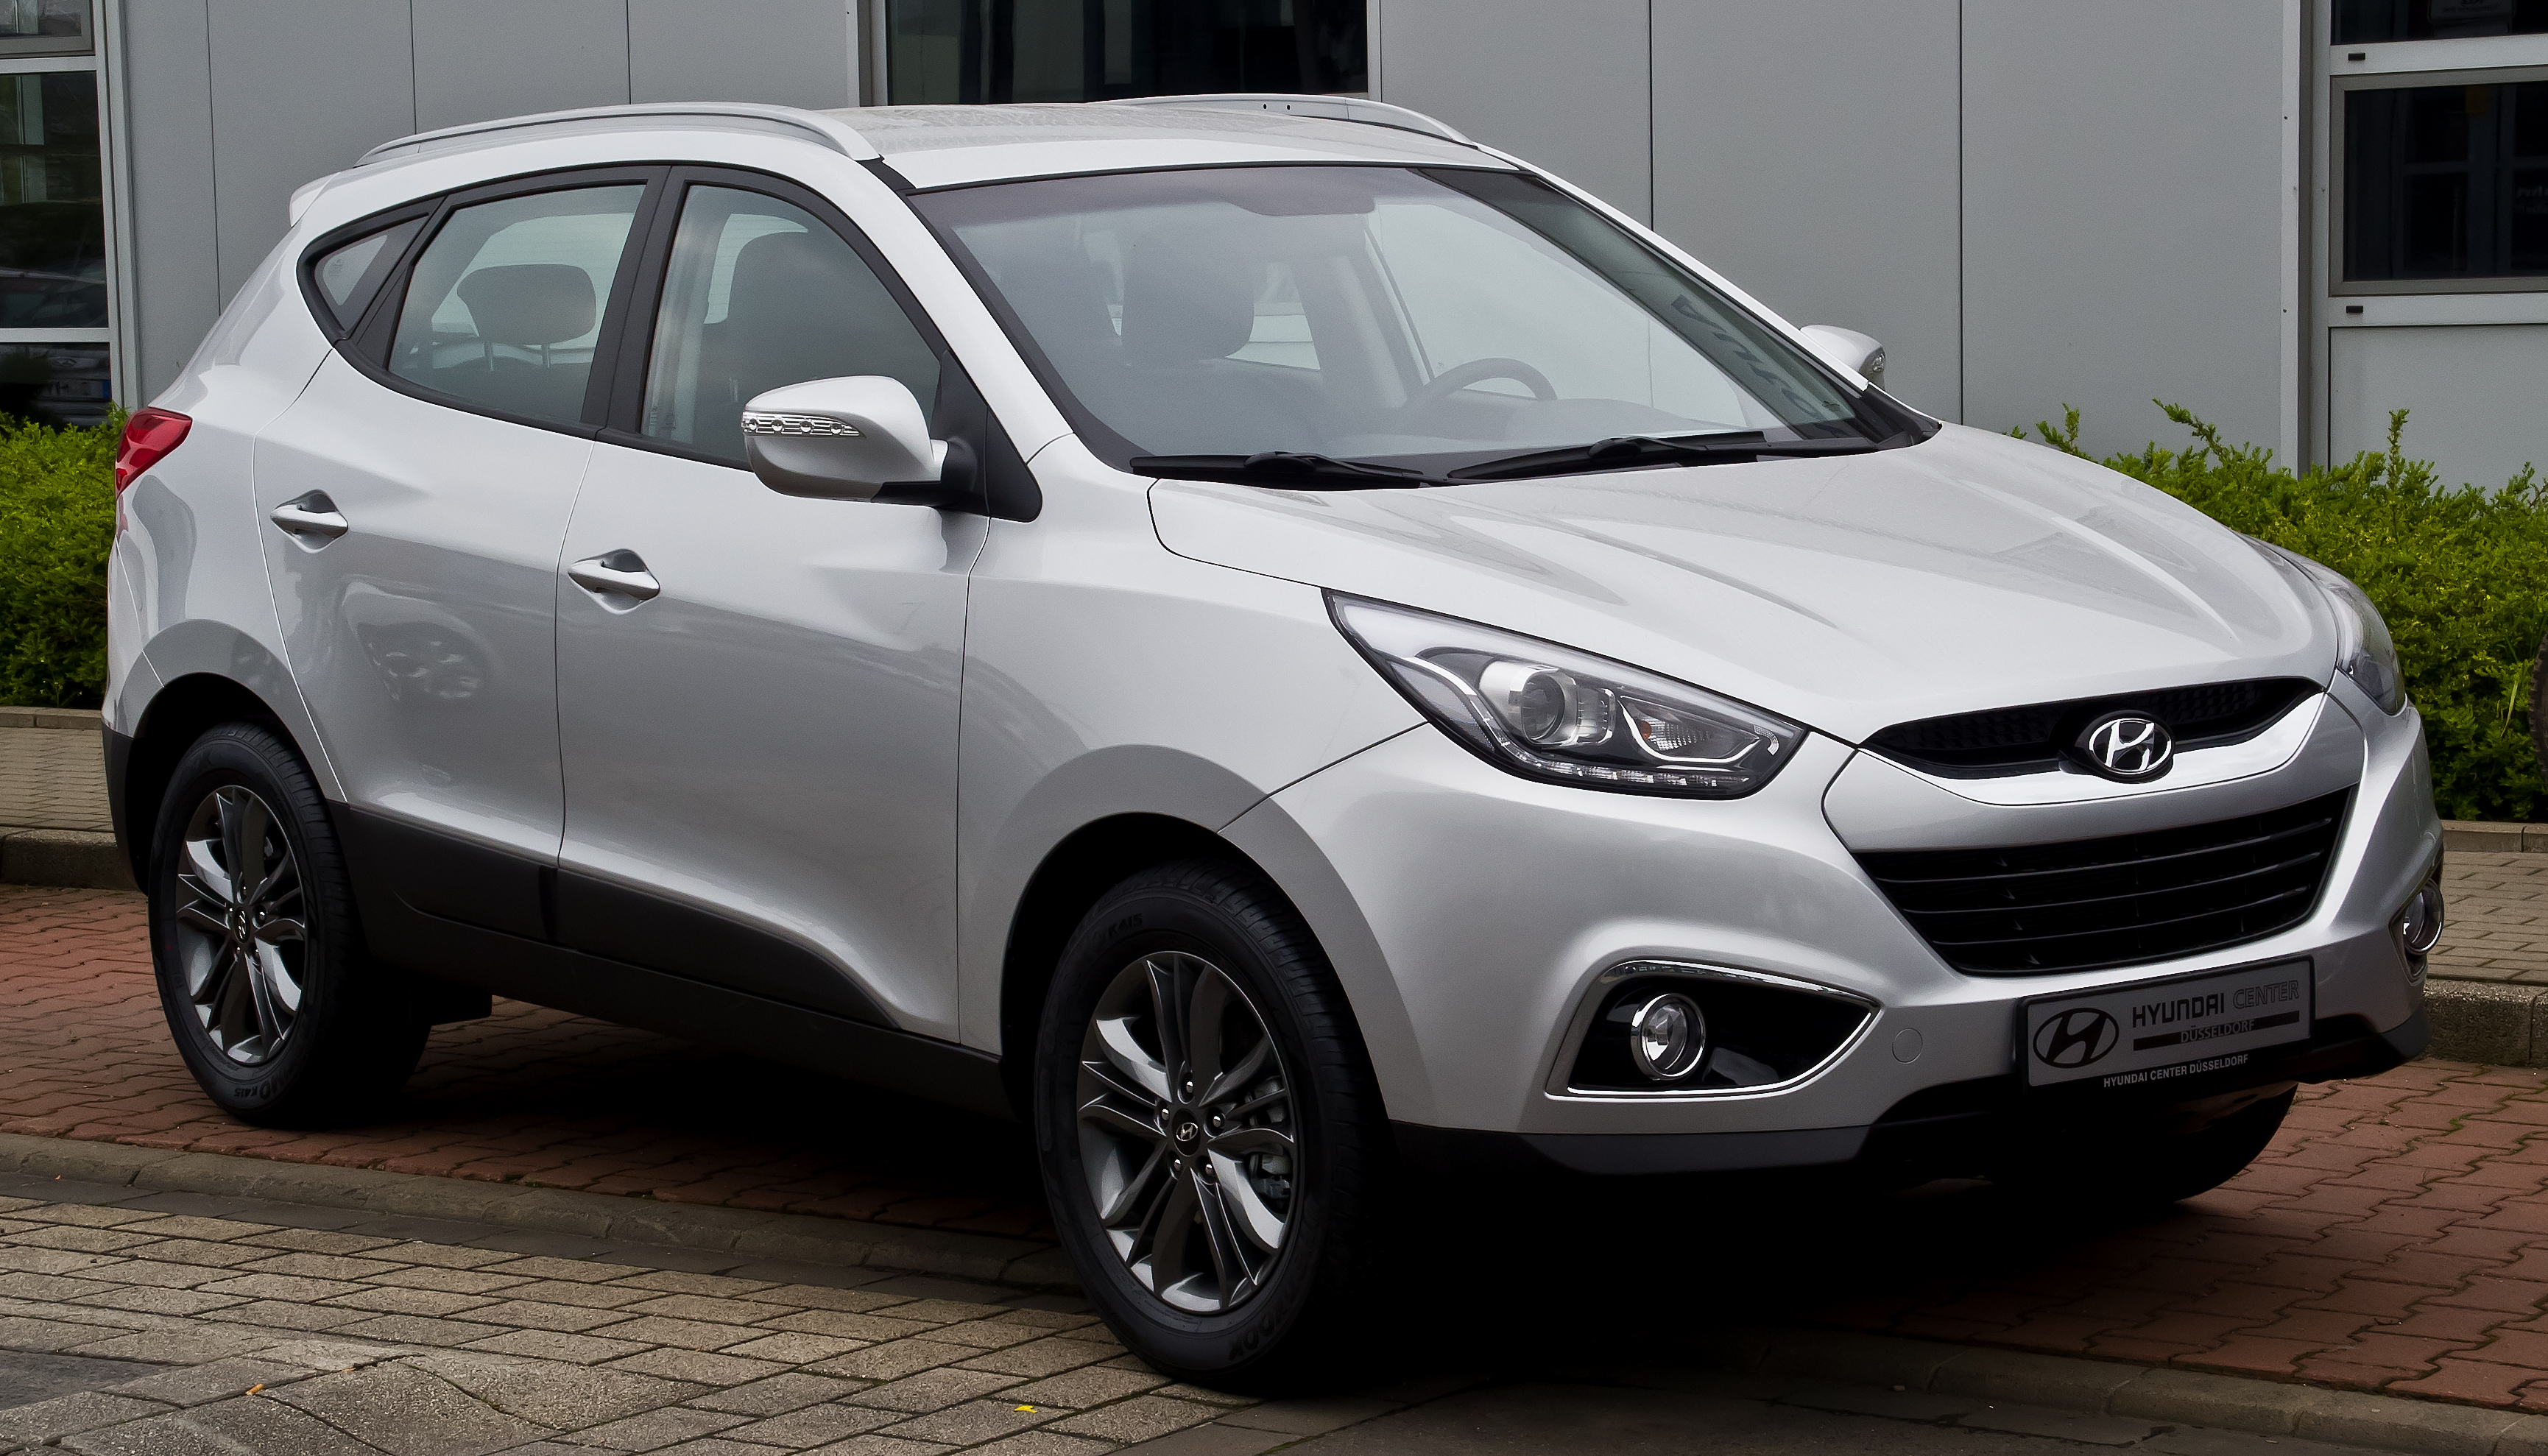 FileHyundai ix35 FIFA World Cup Edition (Facelift